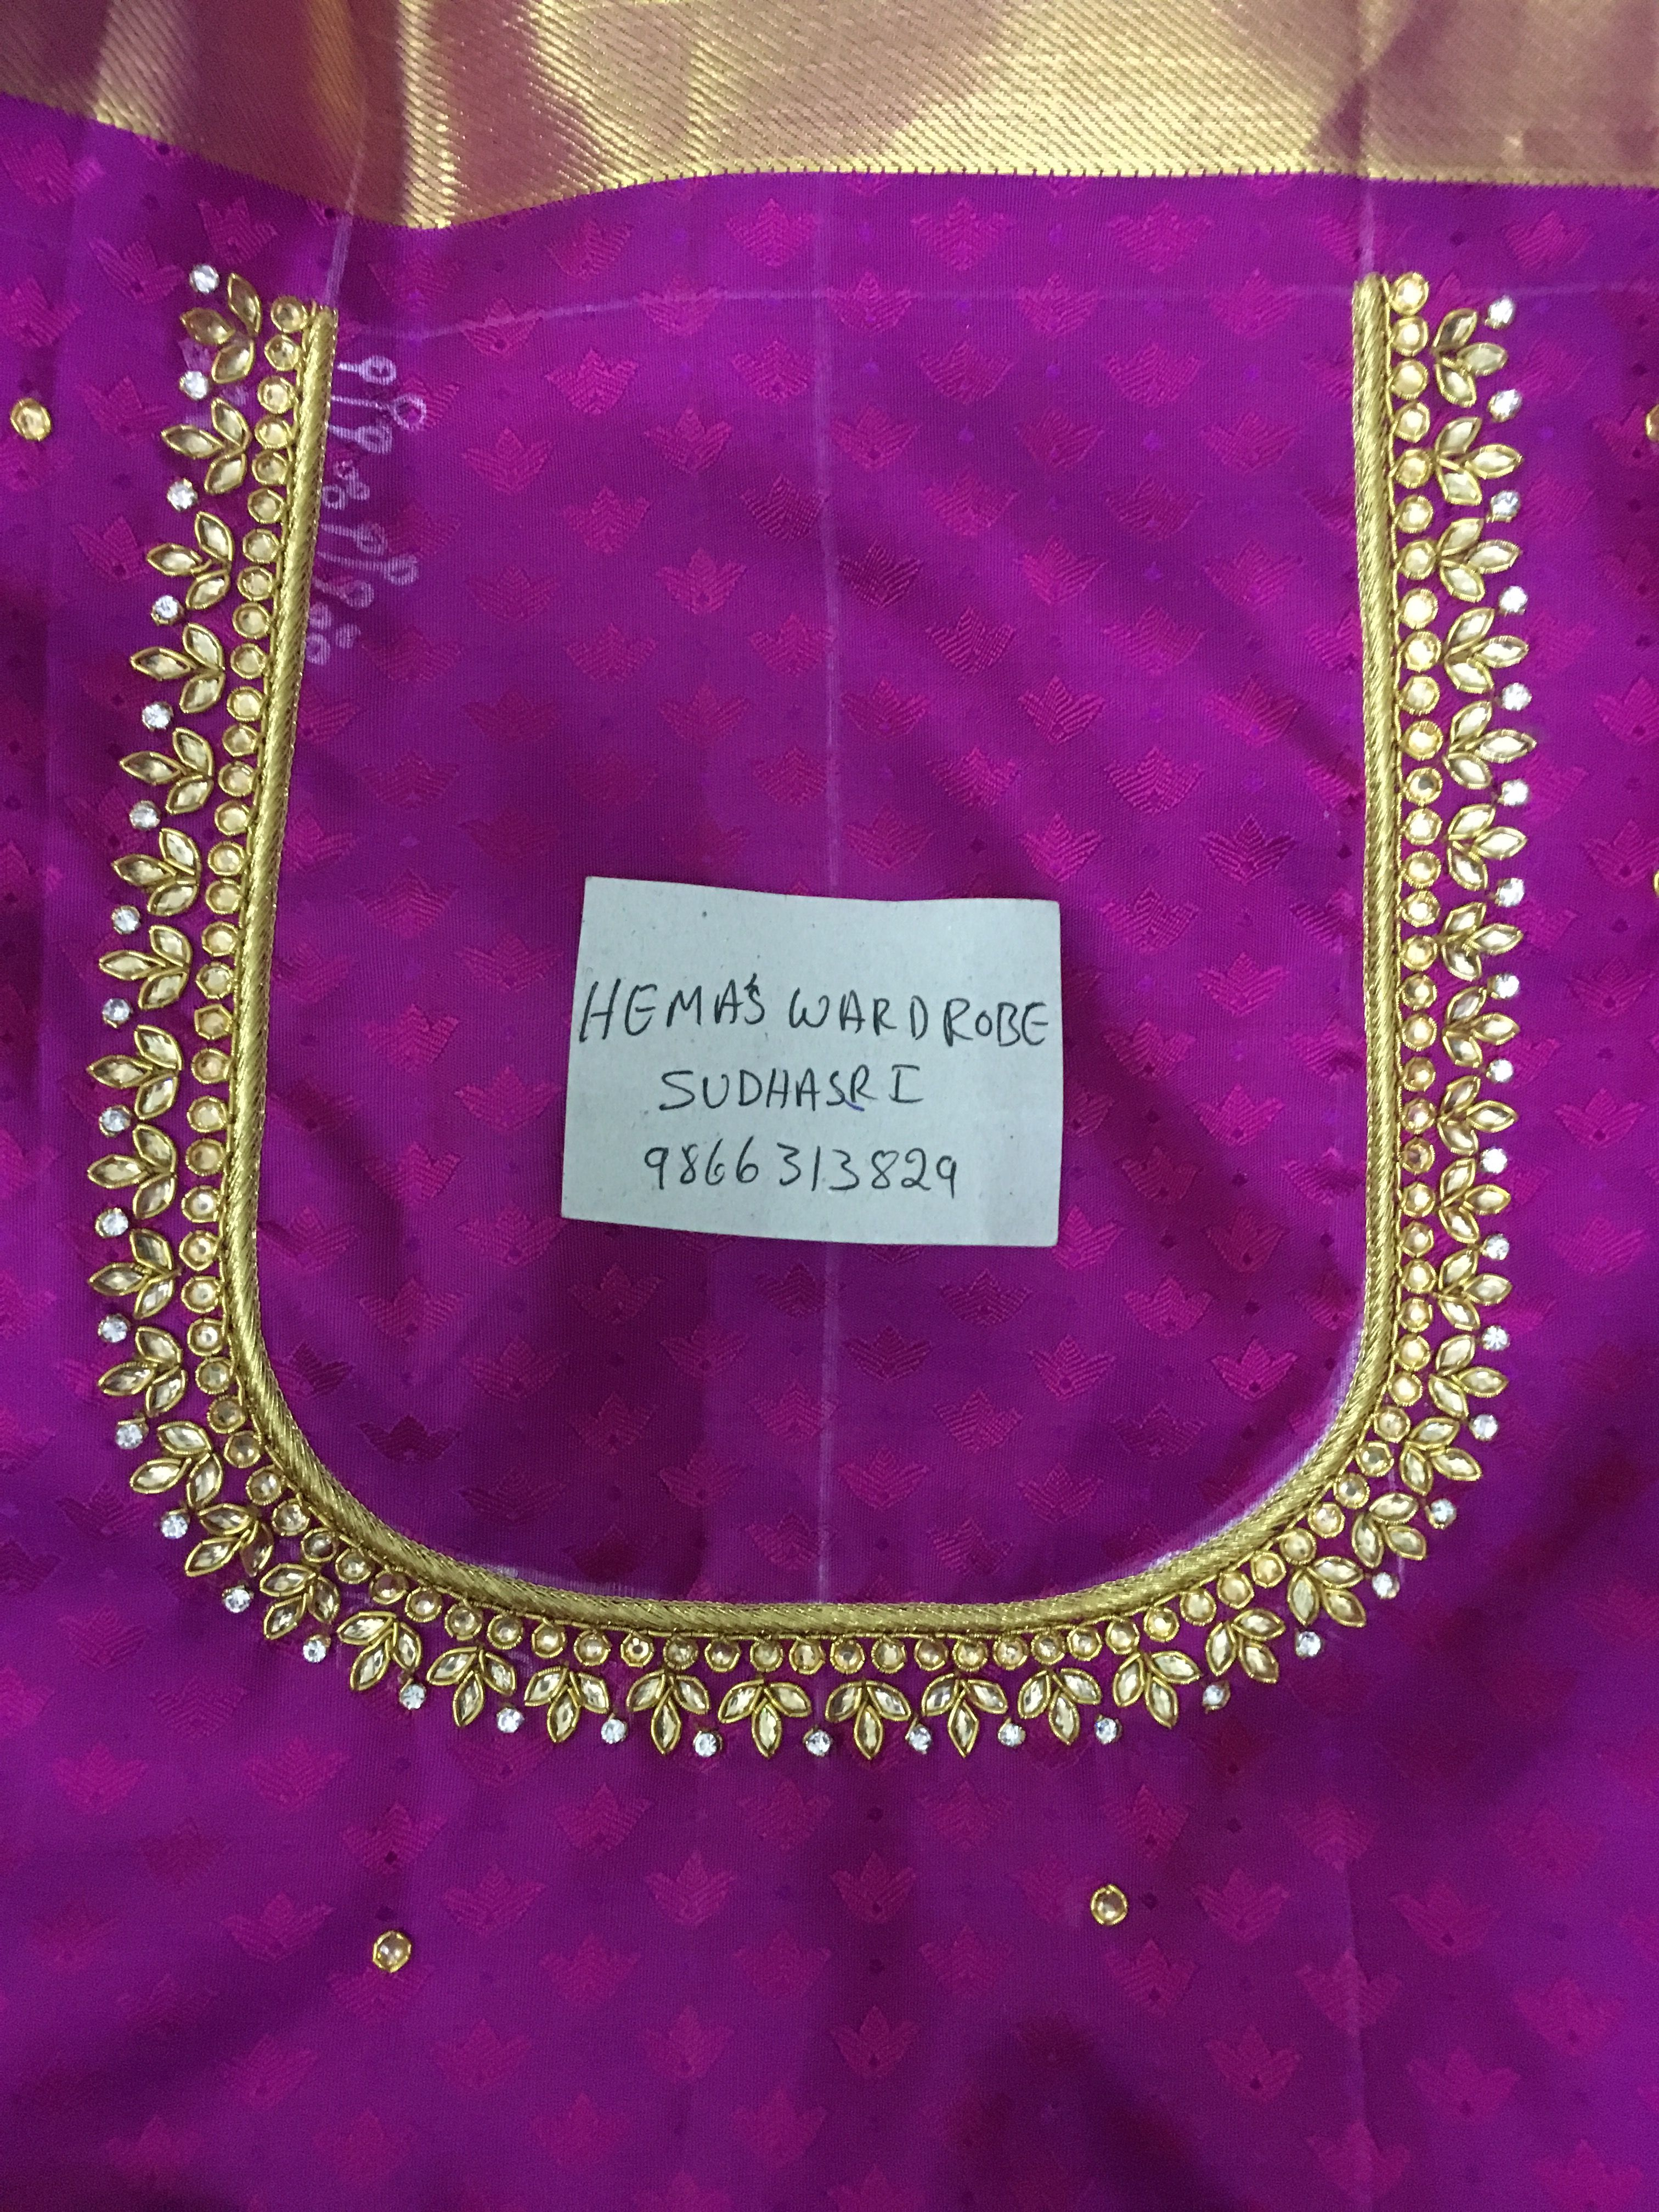 Sudhasri Hemaswardrobe Patch Work Blouse Designs Hand Work Blouse Design Brocade Blouse Designs,Traditional Japanese House Design Pictures